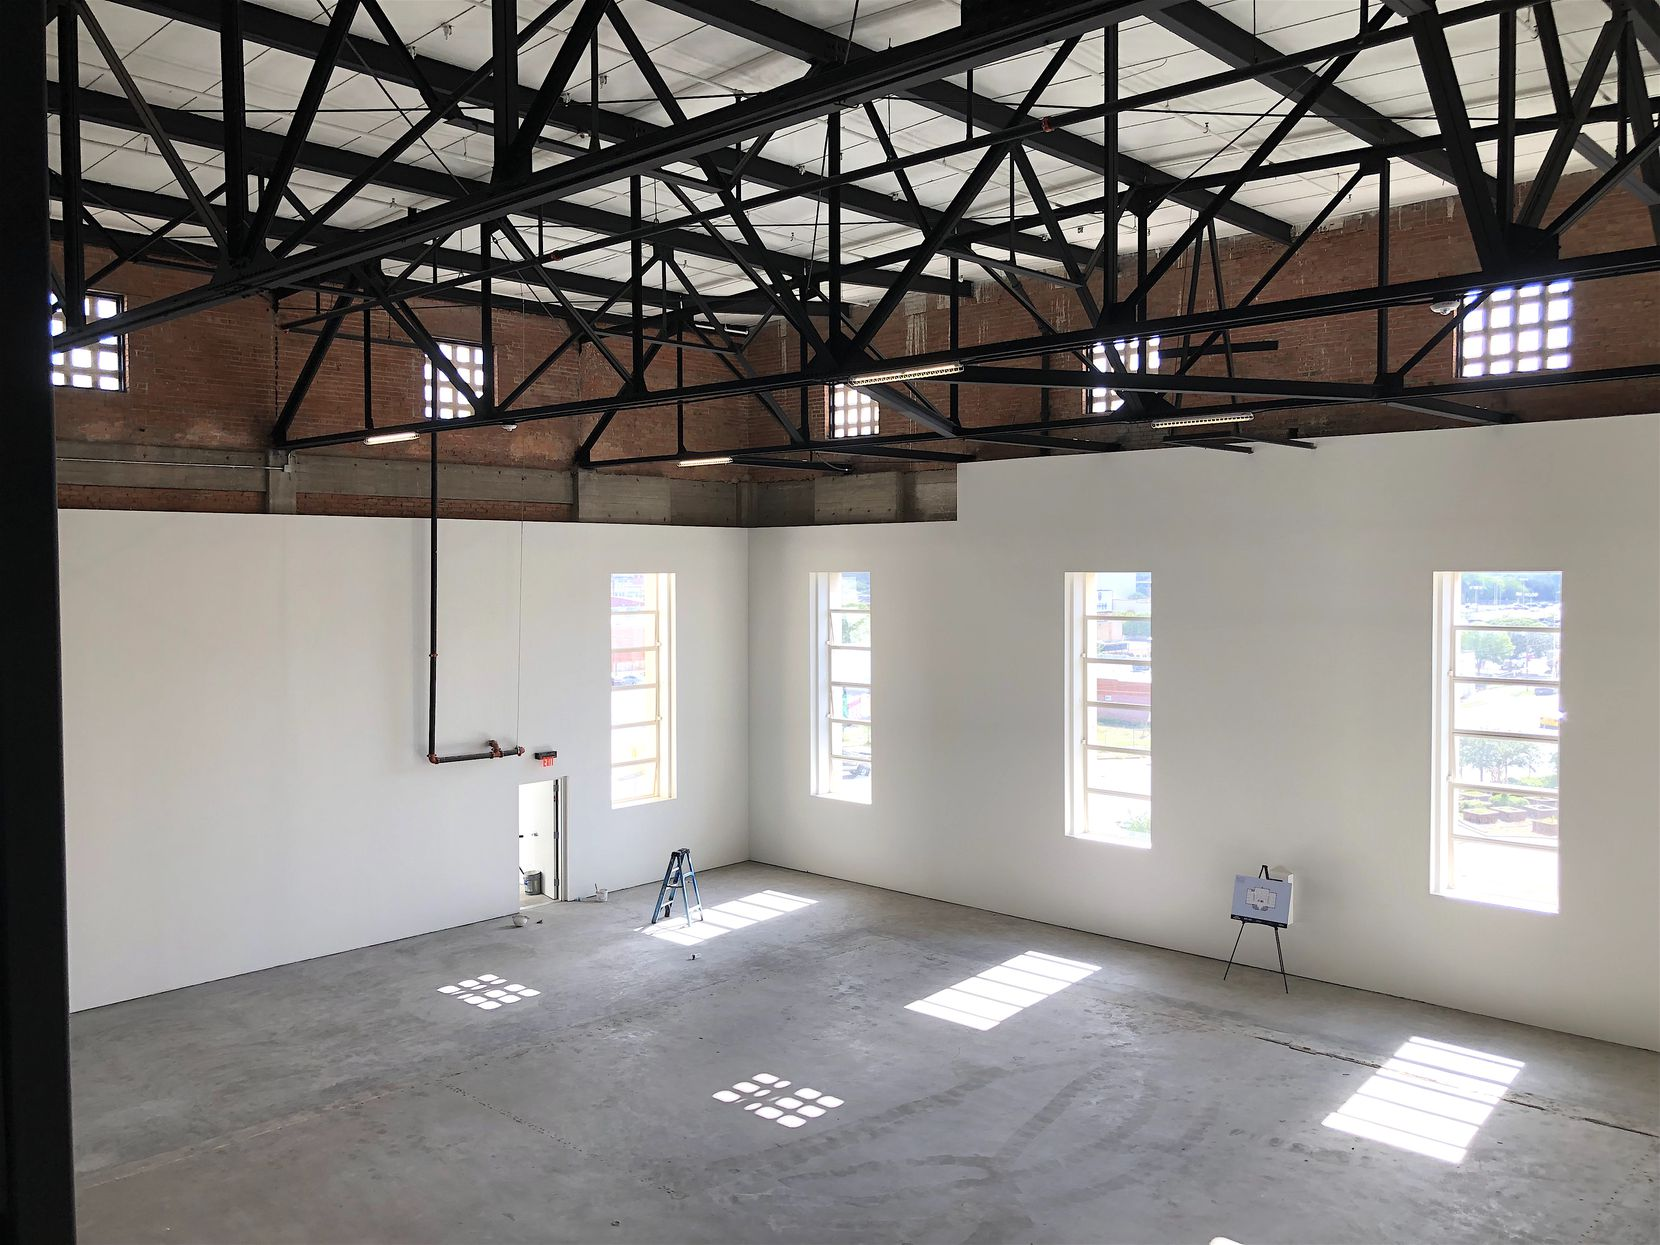 The interior of the old Masonic building has large open space.